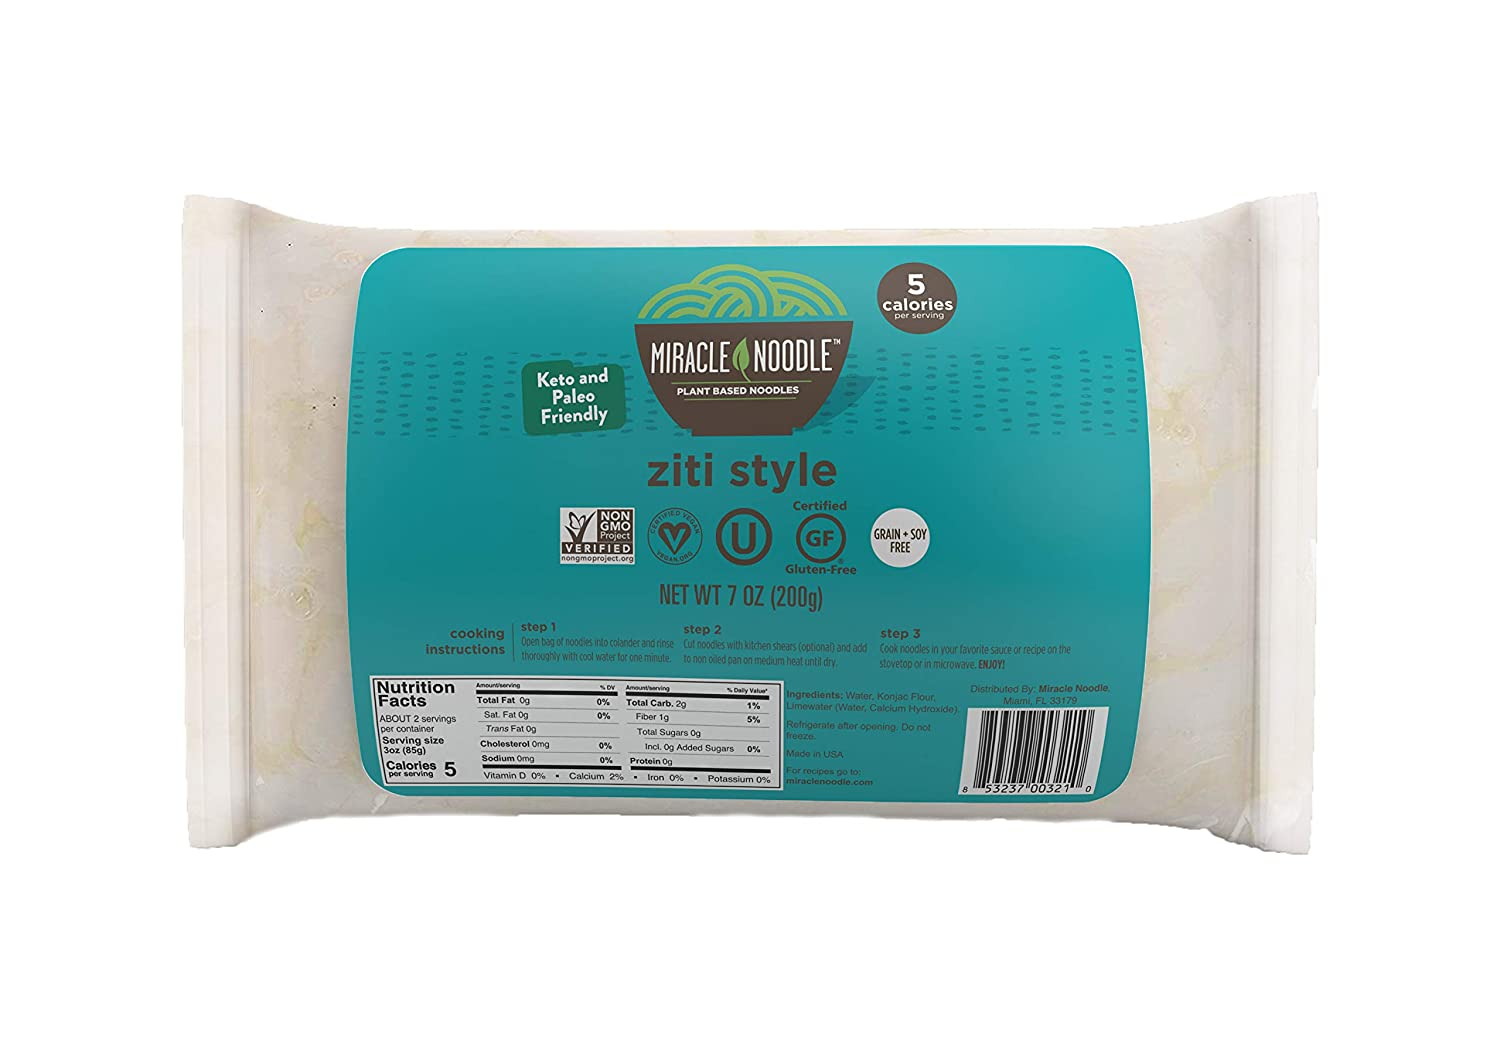 Miracle Noodle Ziti Shirataki Noodles, 7 oz (Pack of 6), Low Carbs, Low Calorie, Gluten Free, Soy Free, Keto Friendly